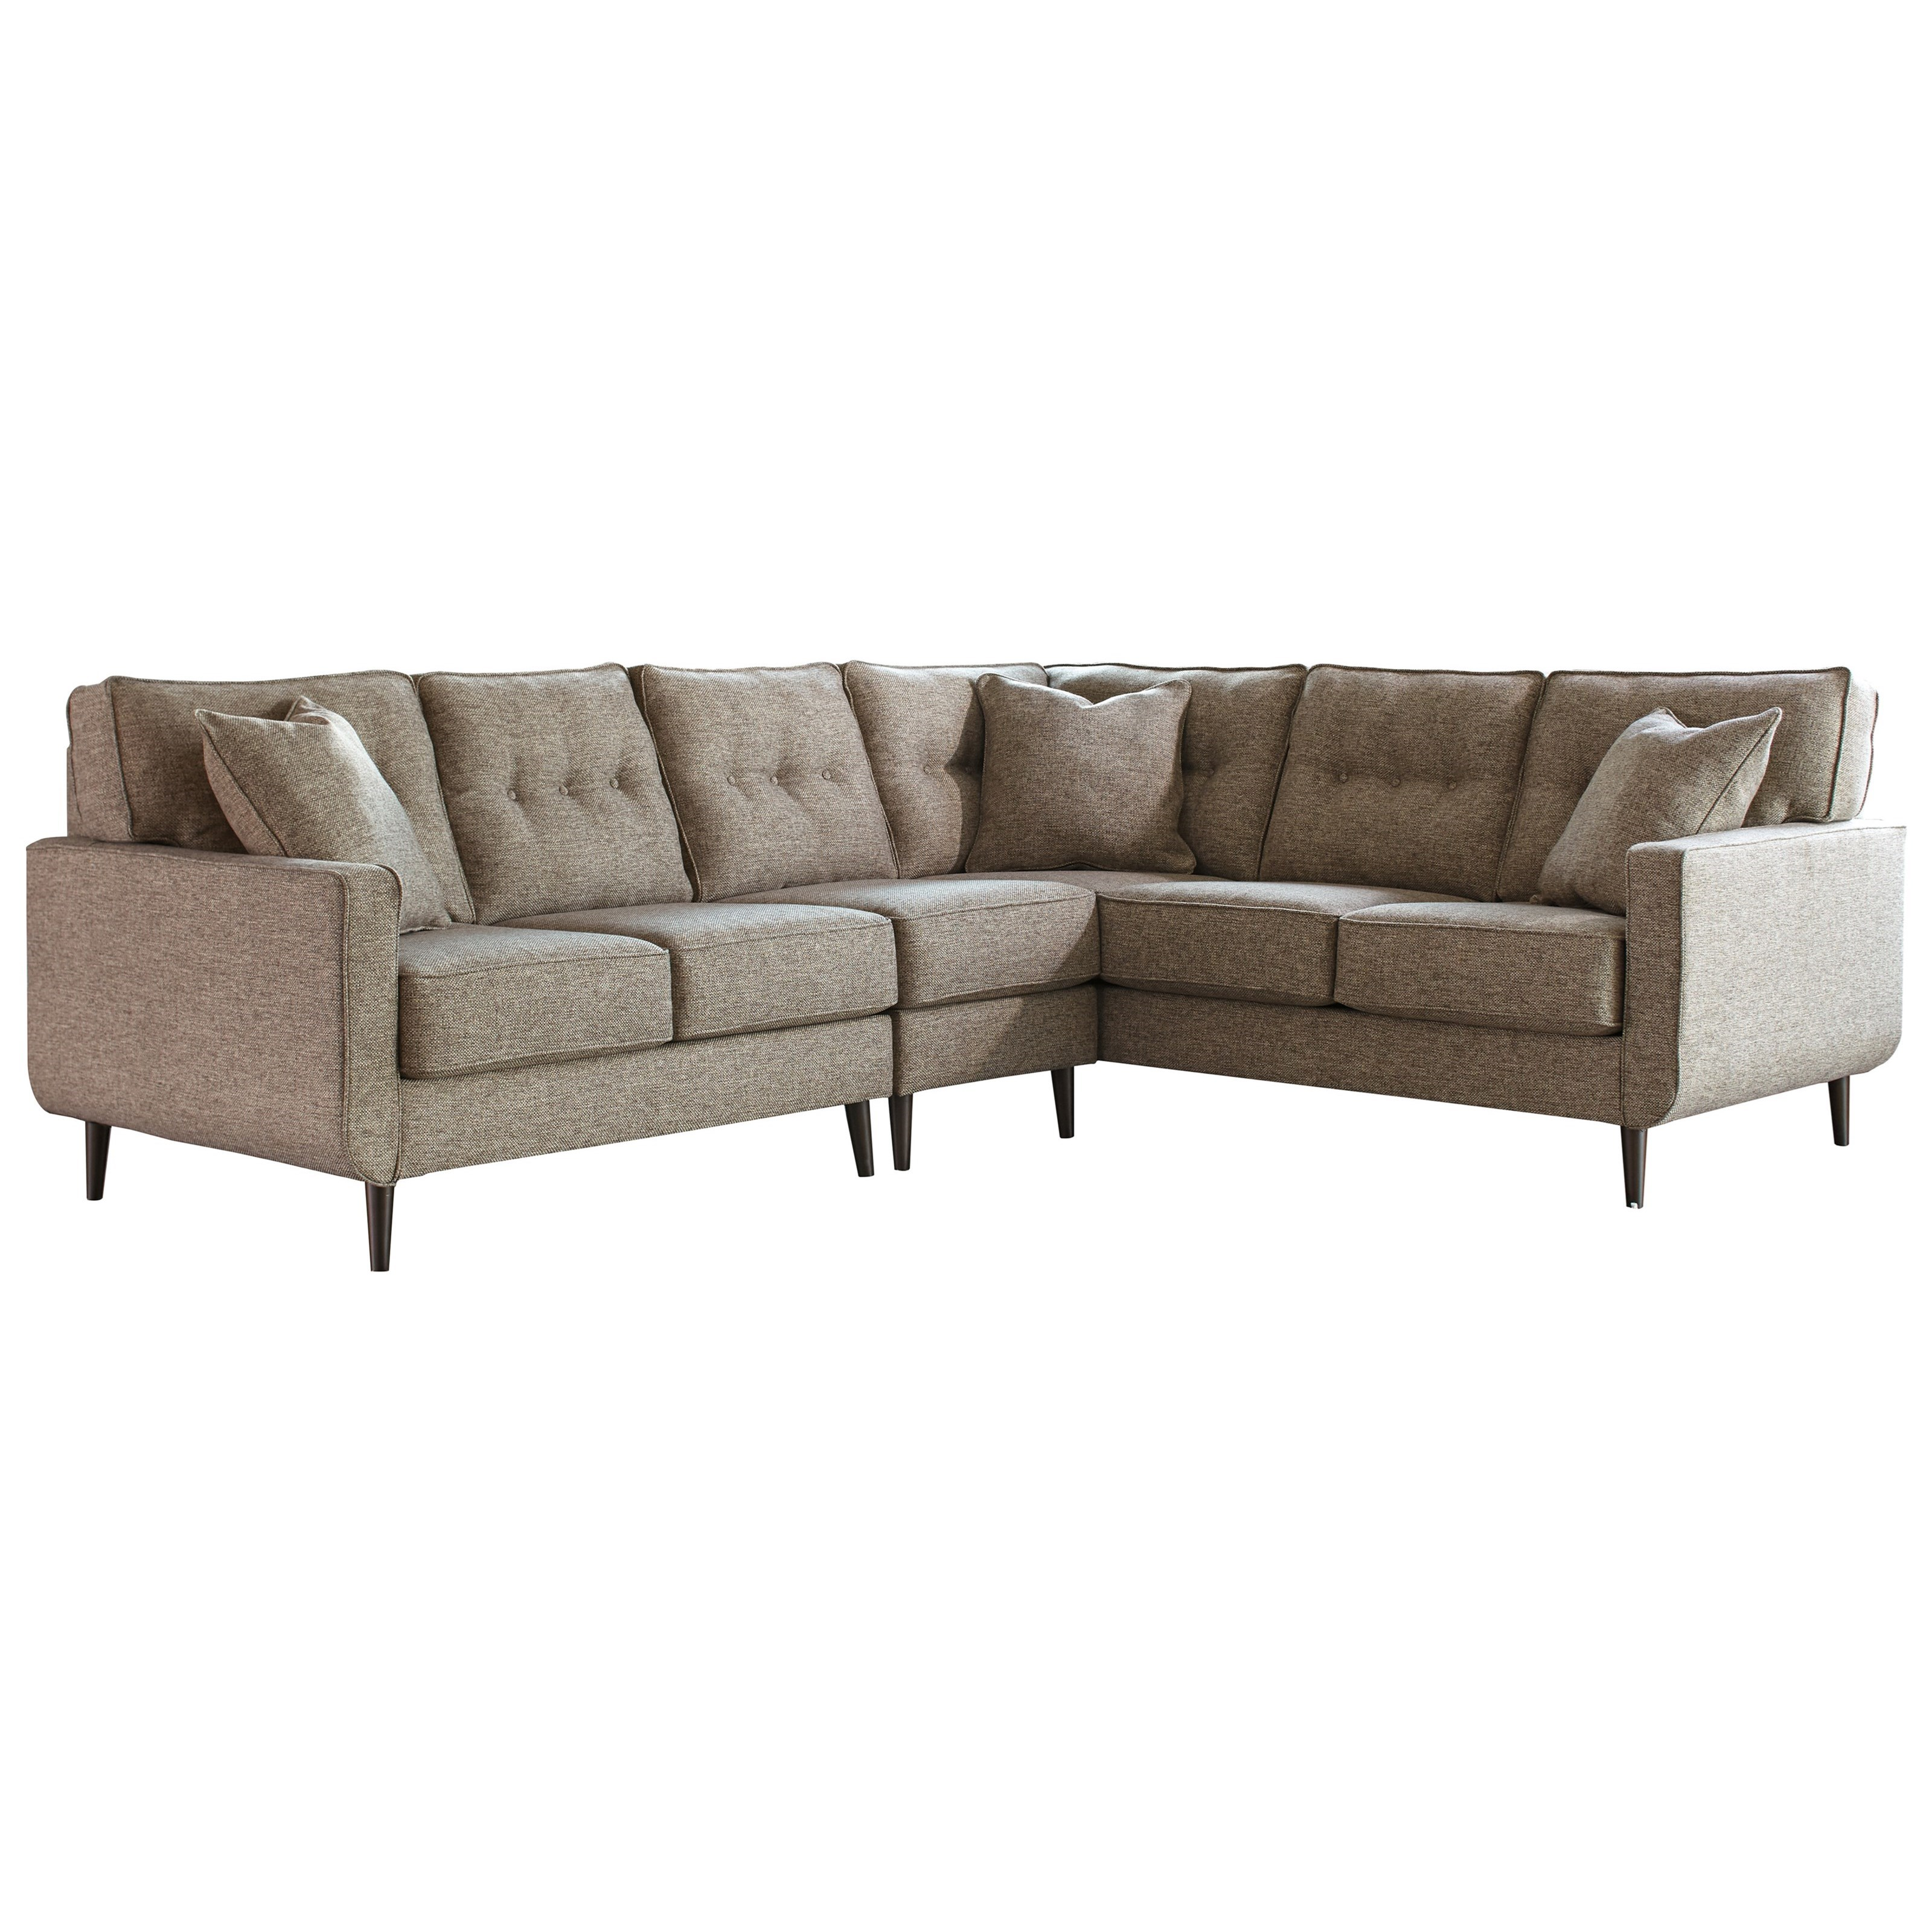 ashley furniture modern sofa king bueno wine review benchcraft by dahra mid century 3 piece